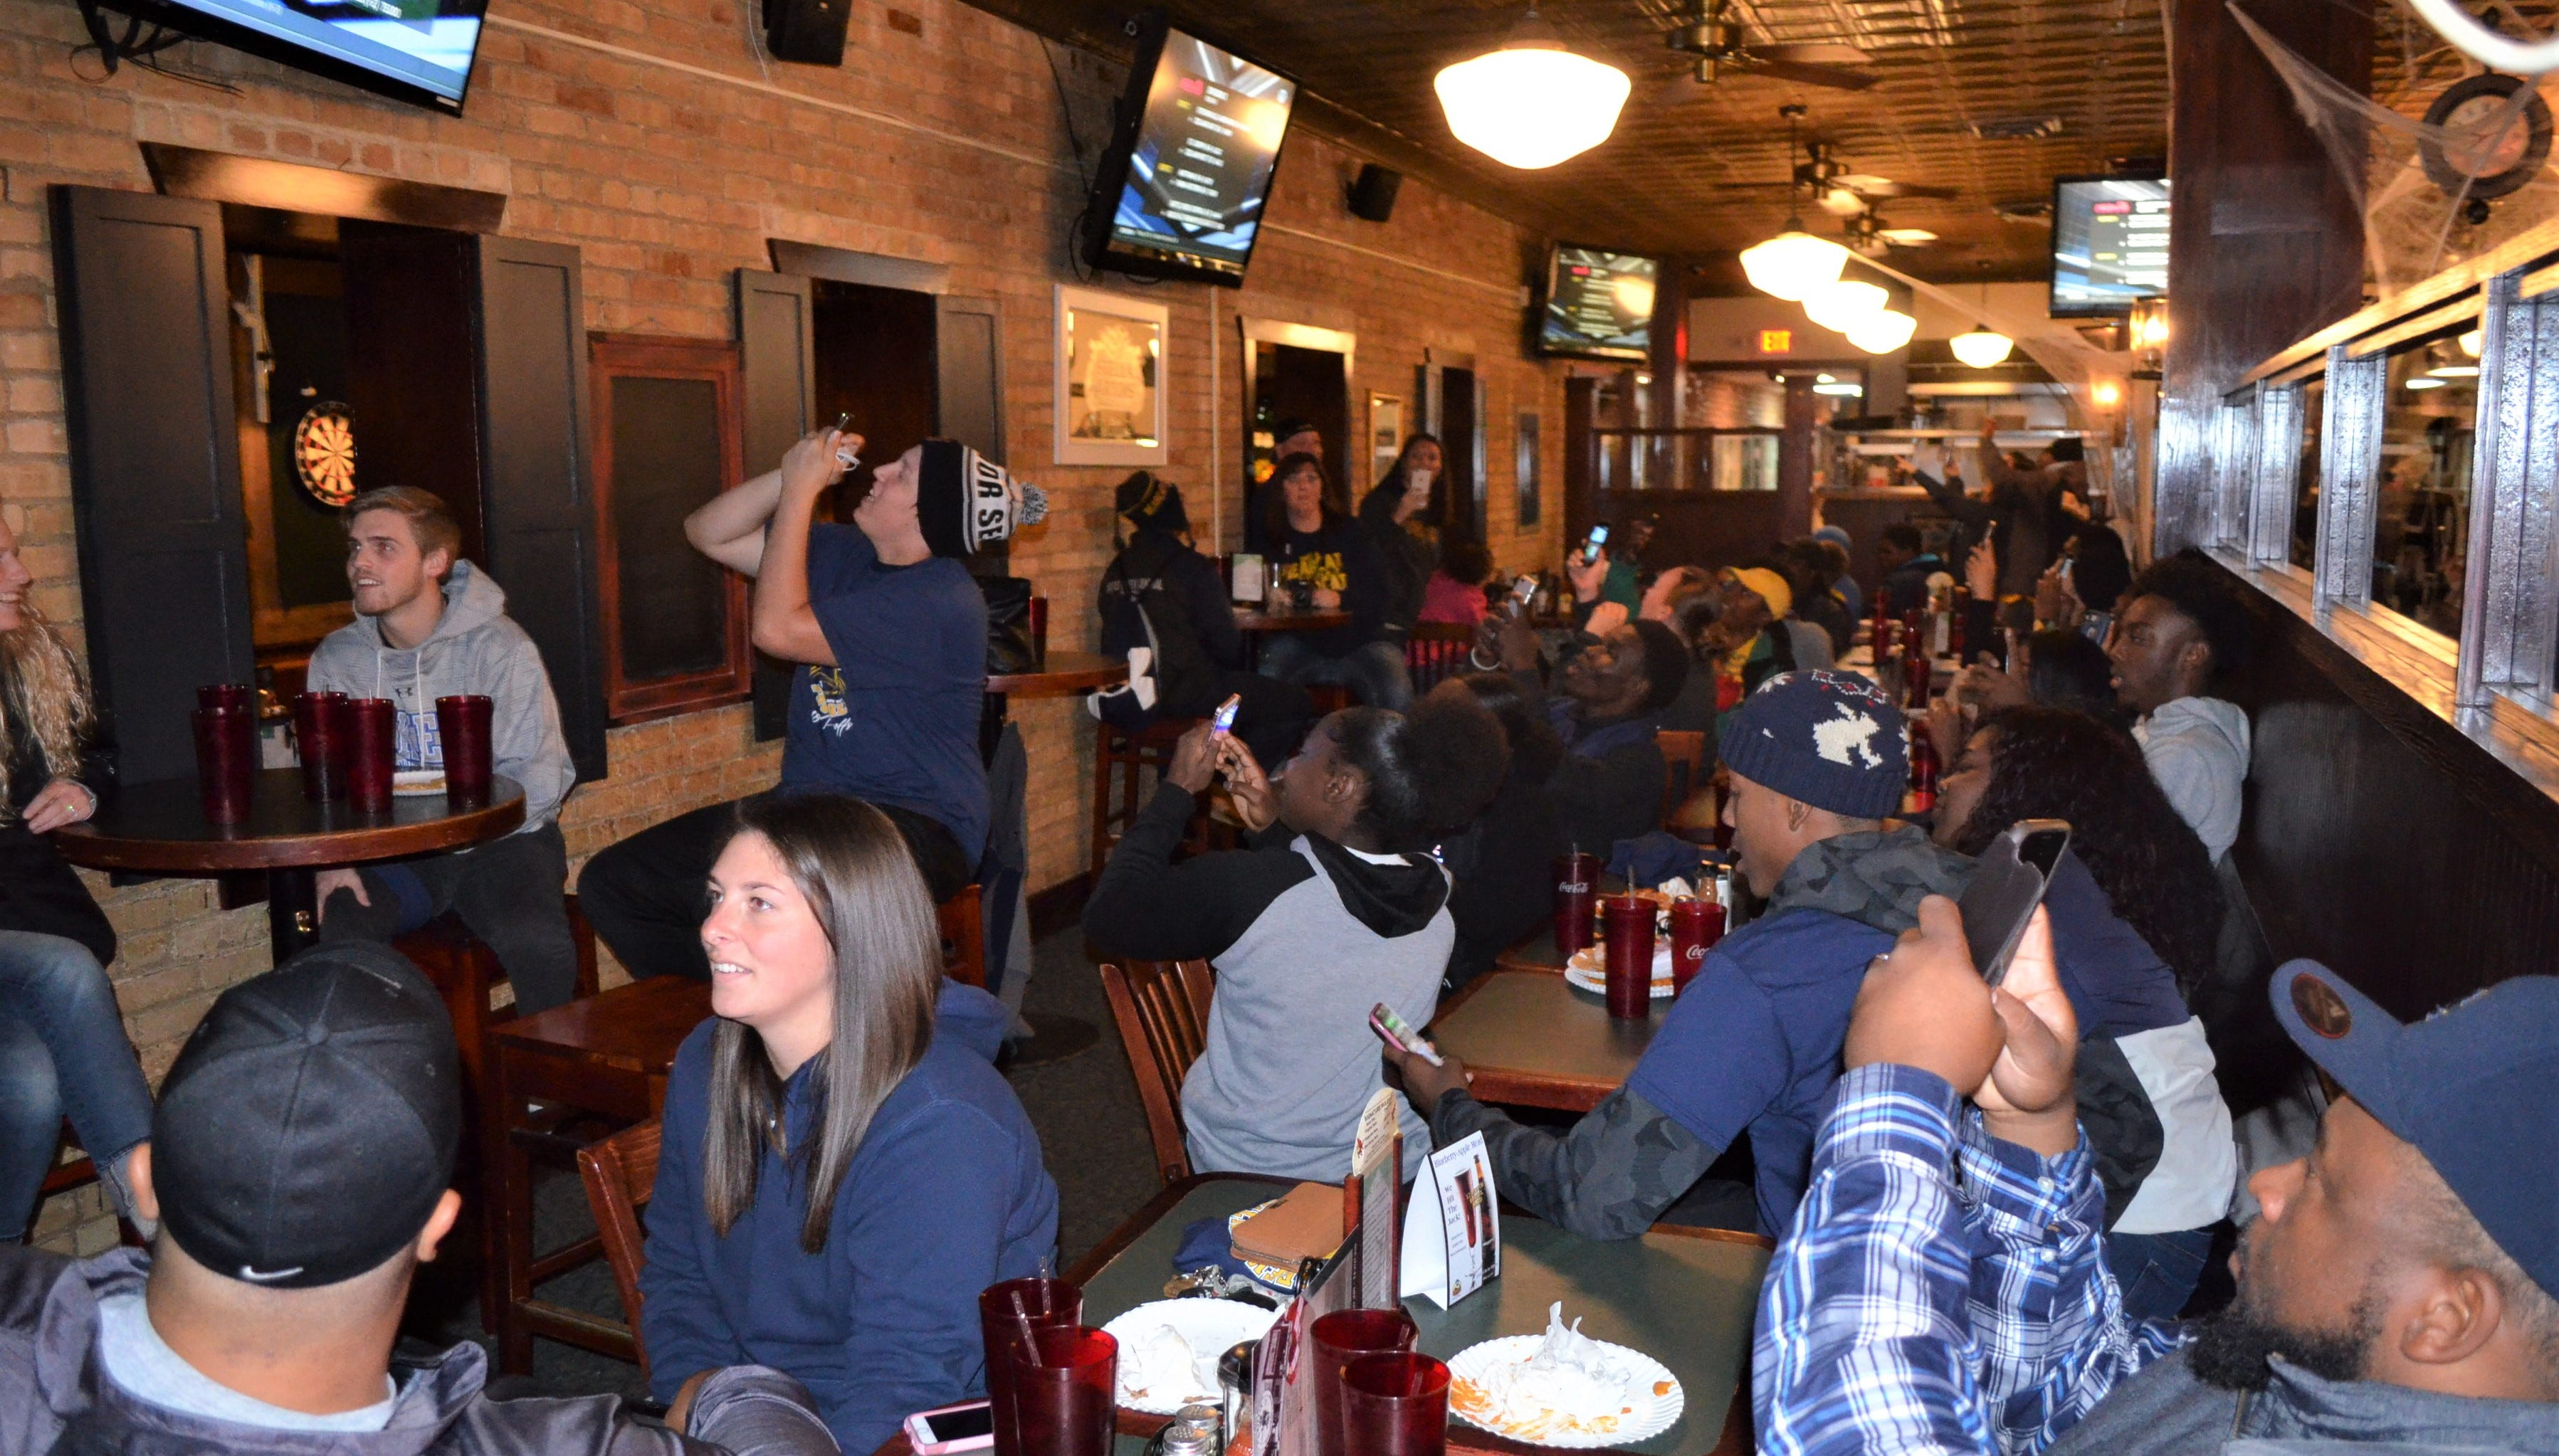 The Battle Creek Central football team sees its name listed as a playoff participant for the first time in 10 years as the Bearcats celebrated the accomplishment at a viewing party at Griffin Grill & Pub on Sunday.